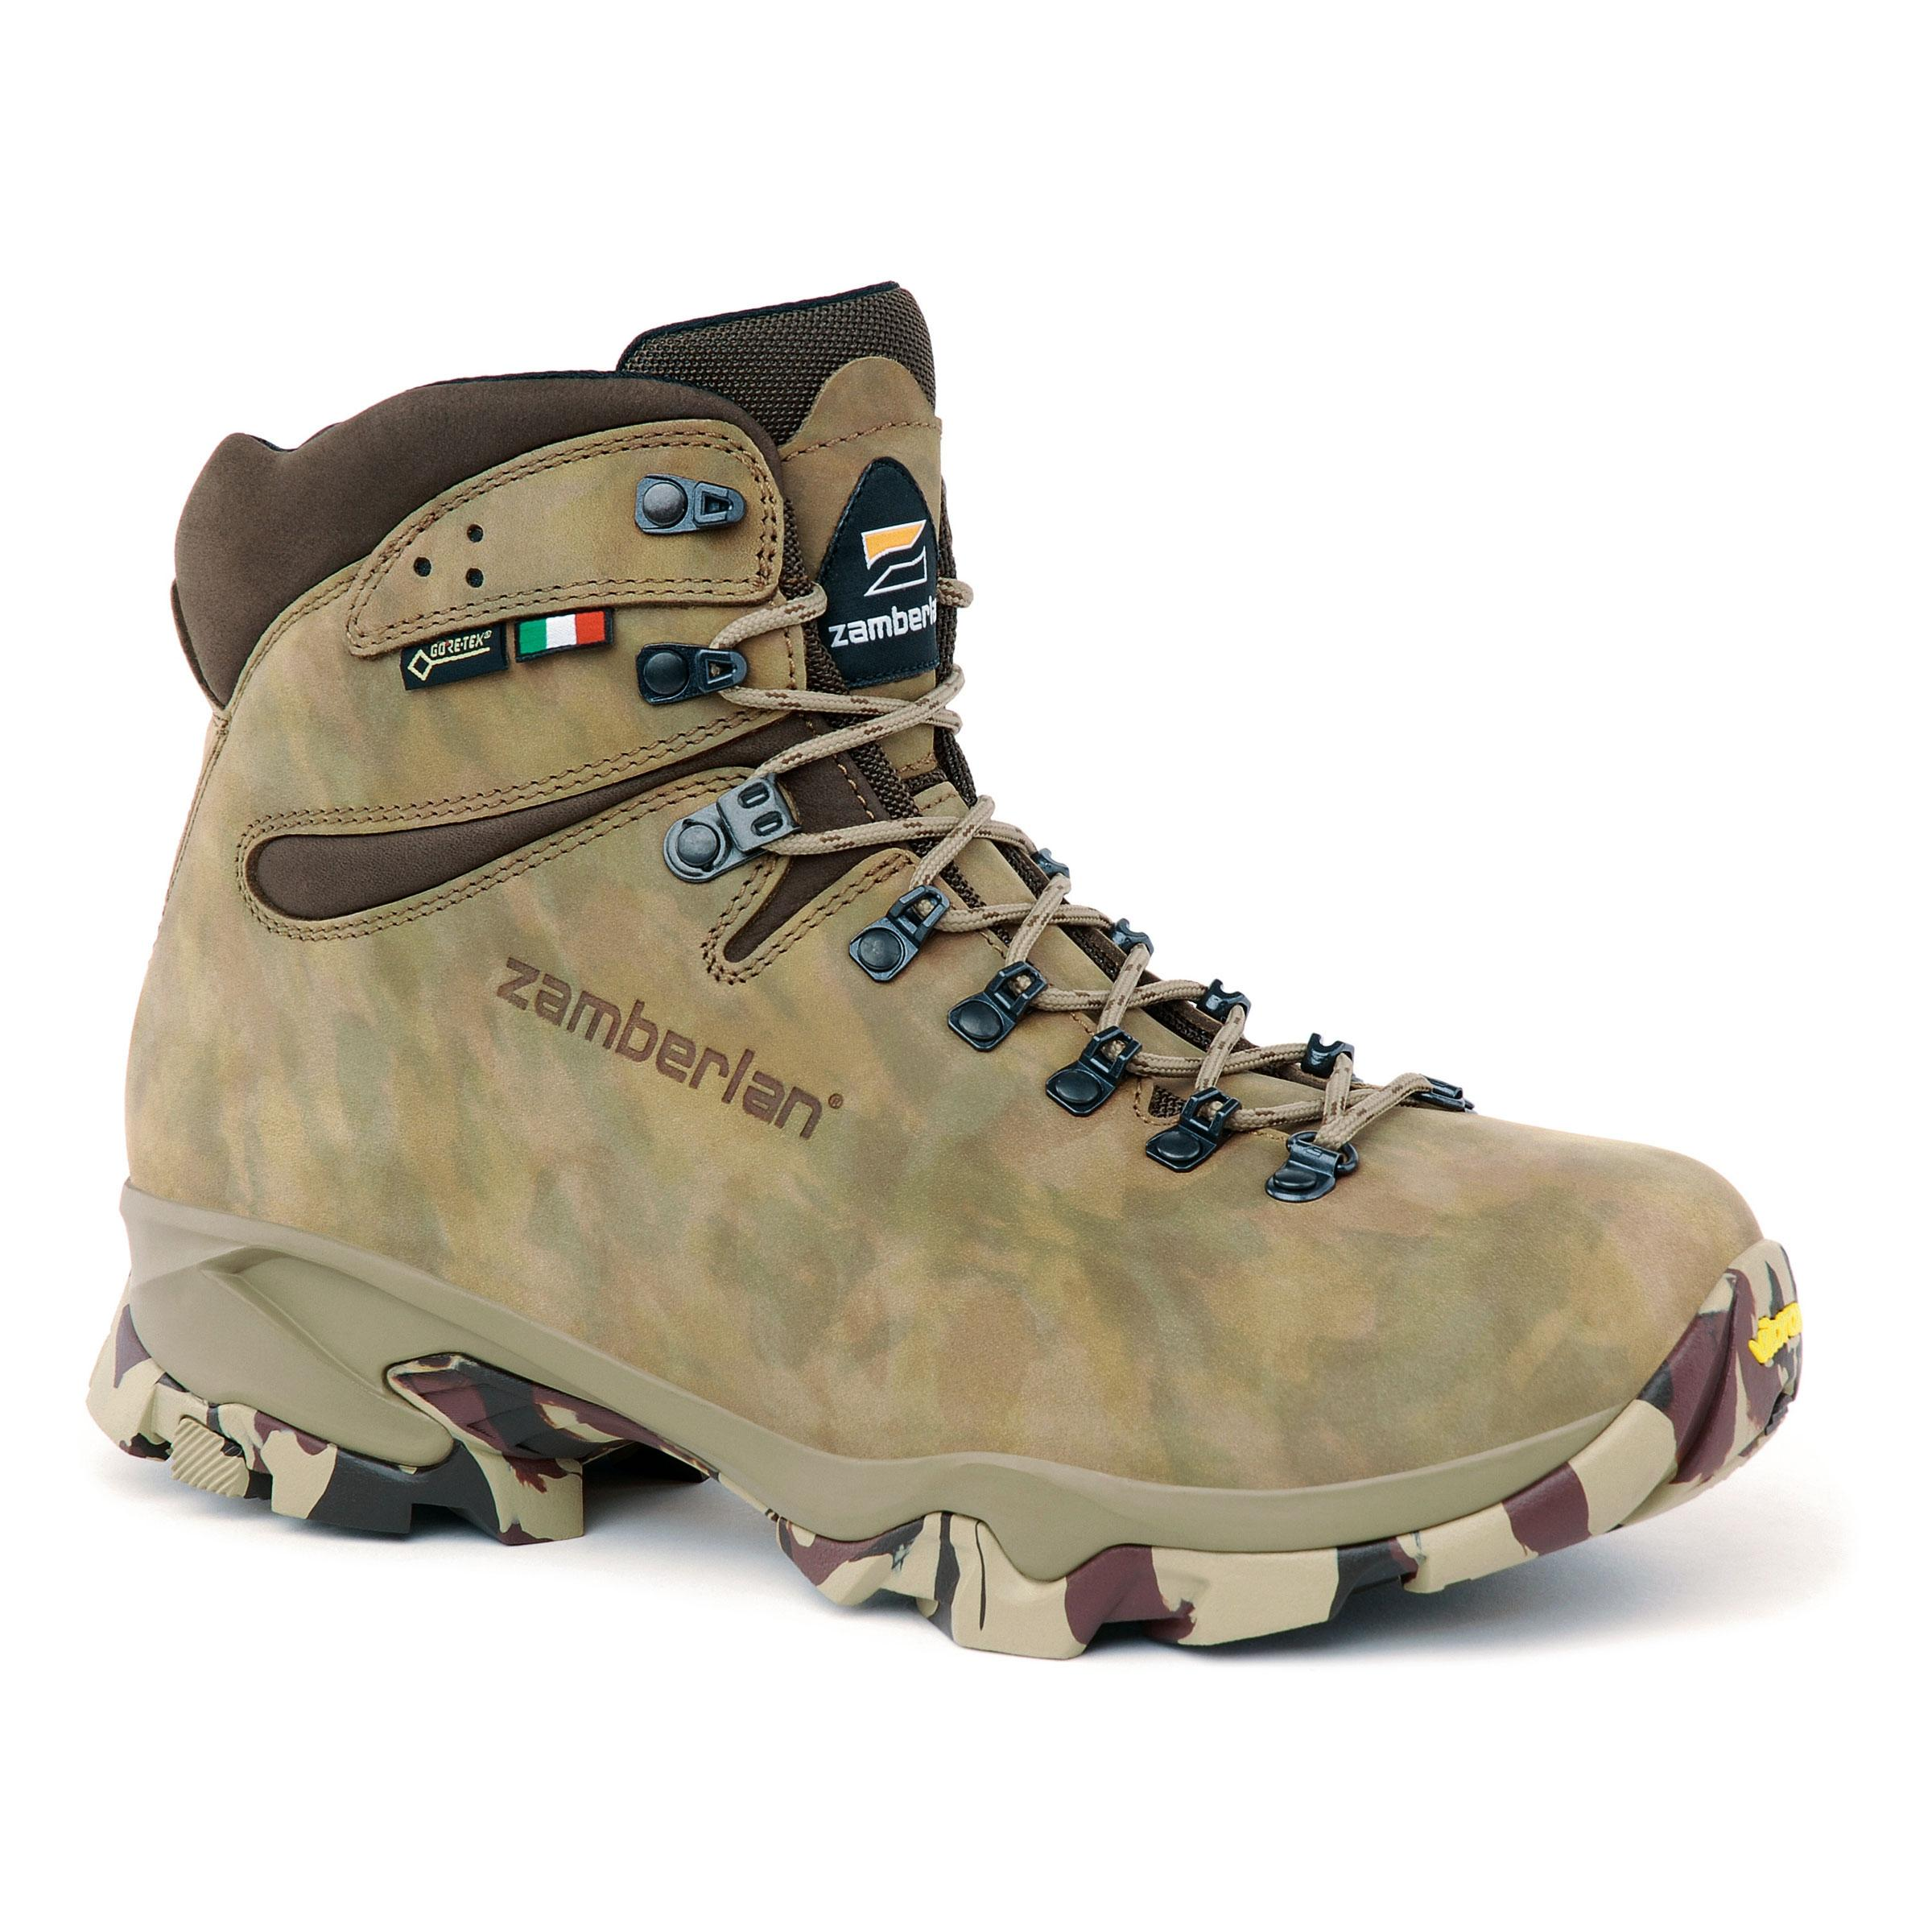 1013 LEOPARD GTX®   -   Men's Hunting & Hiking Boots   -   Camouflage